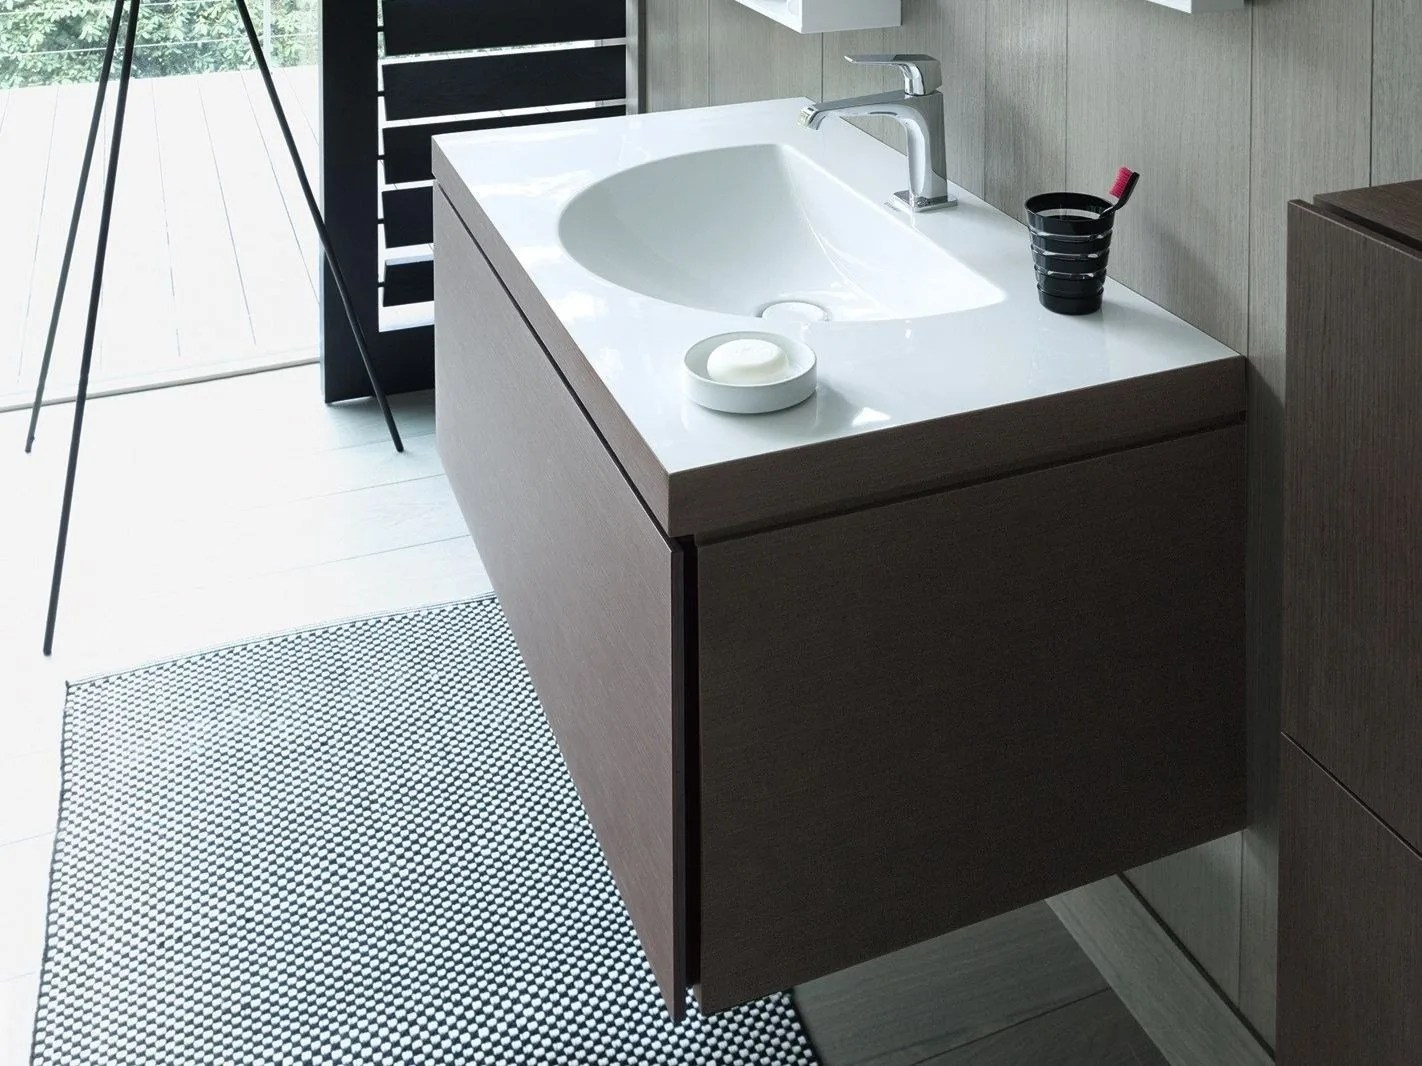 Duravit Waschtischunterschrank Washbasin And Bathroom Furniture Merge To Form A Single Unit